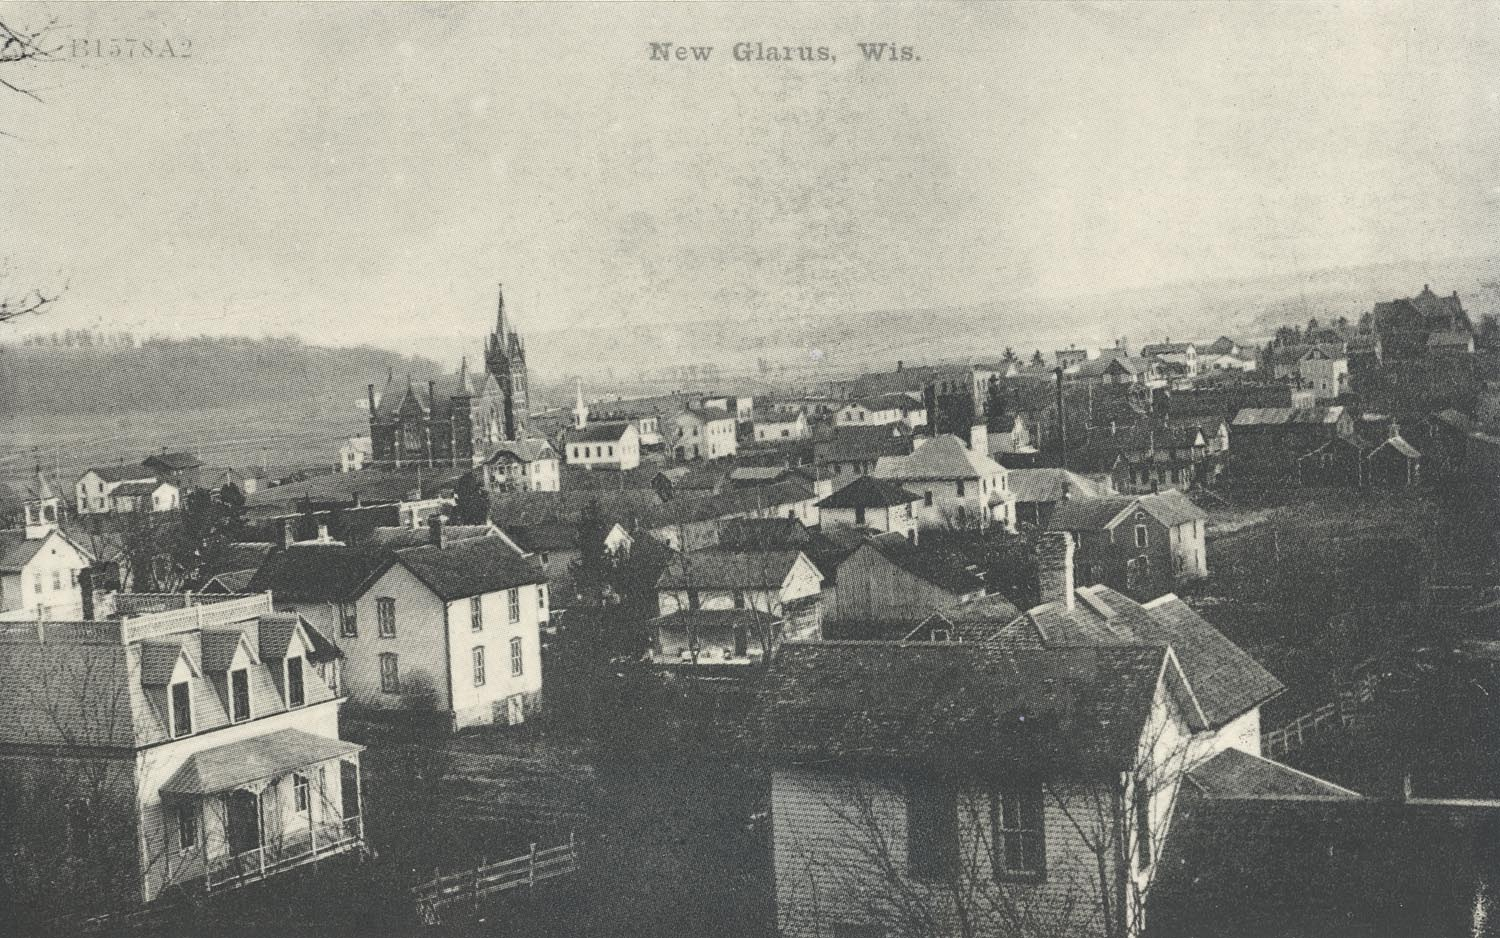 New Glarus View 1900